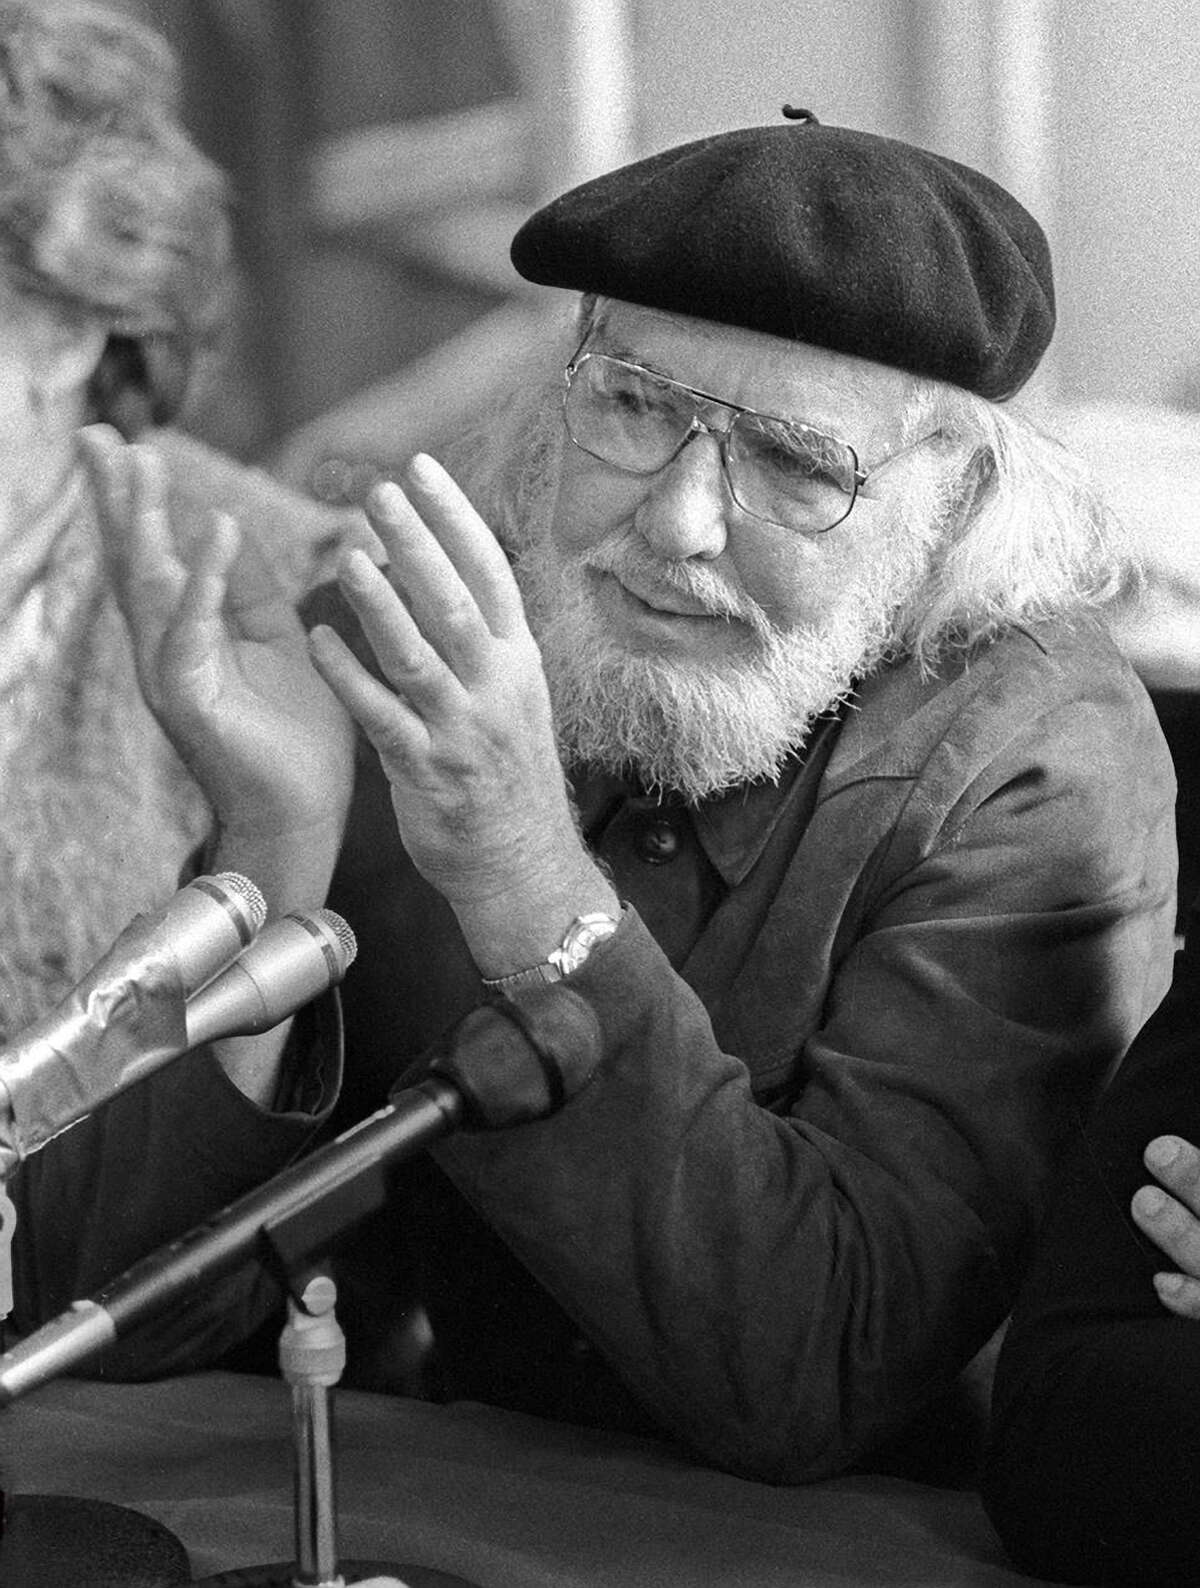 A reading by Ernesto Cardenal of Nicaragua will close the festival.